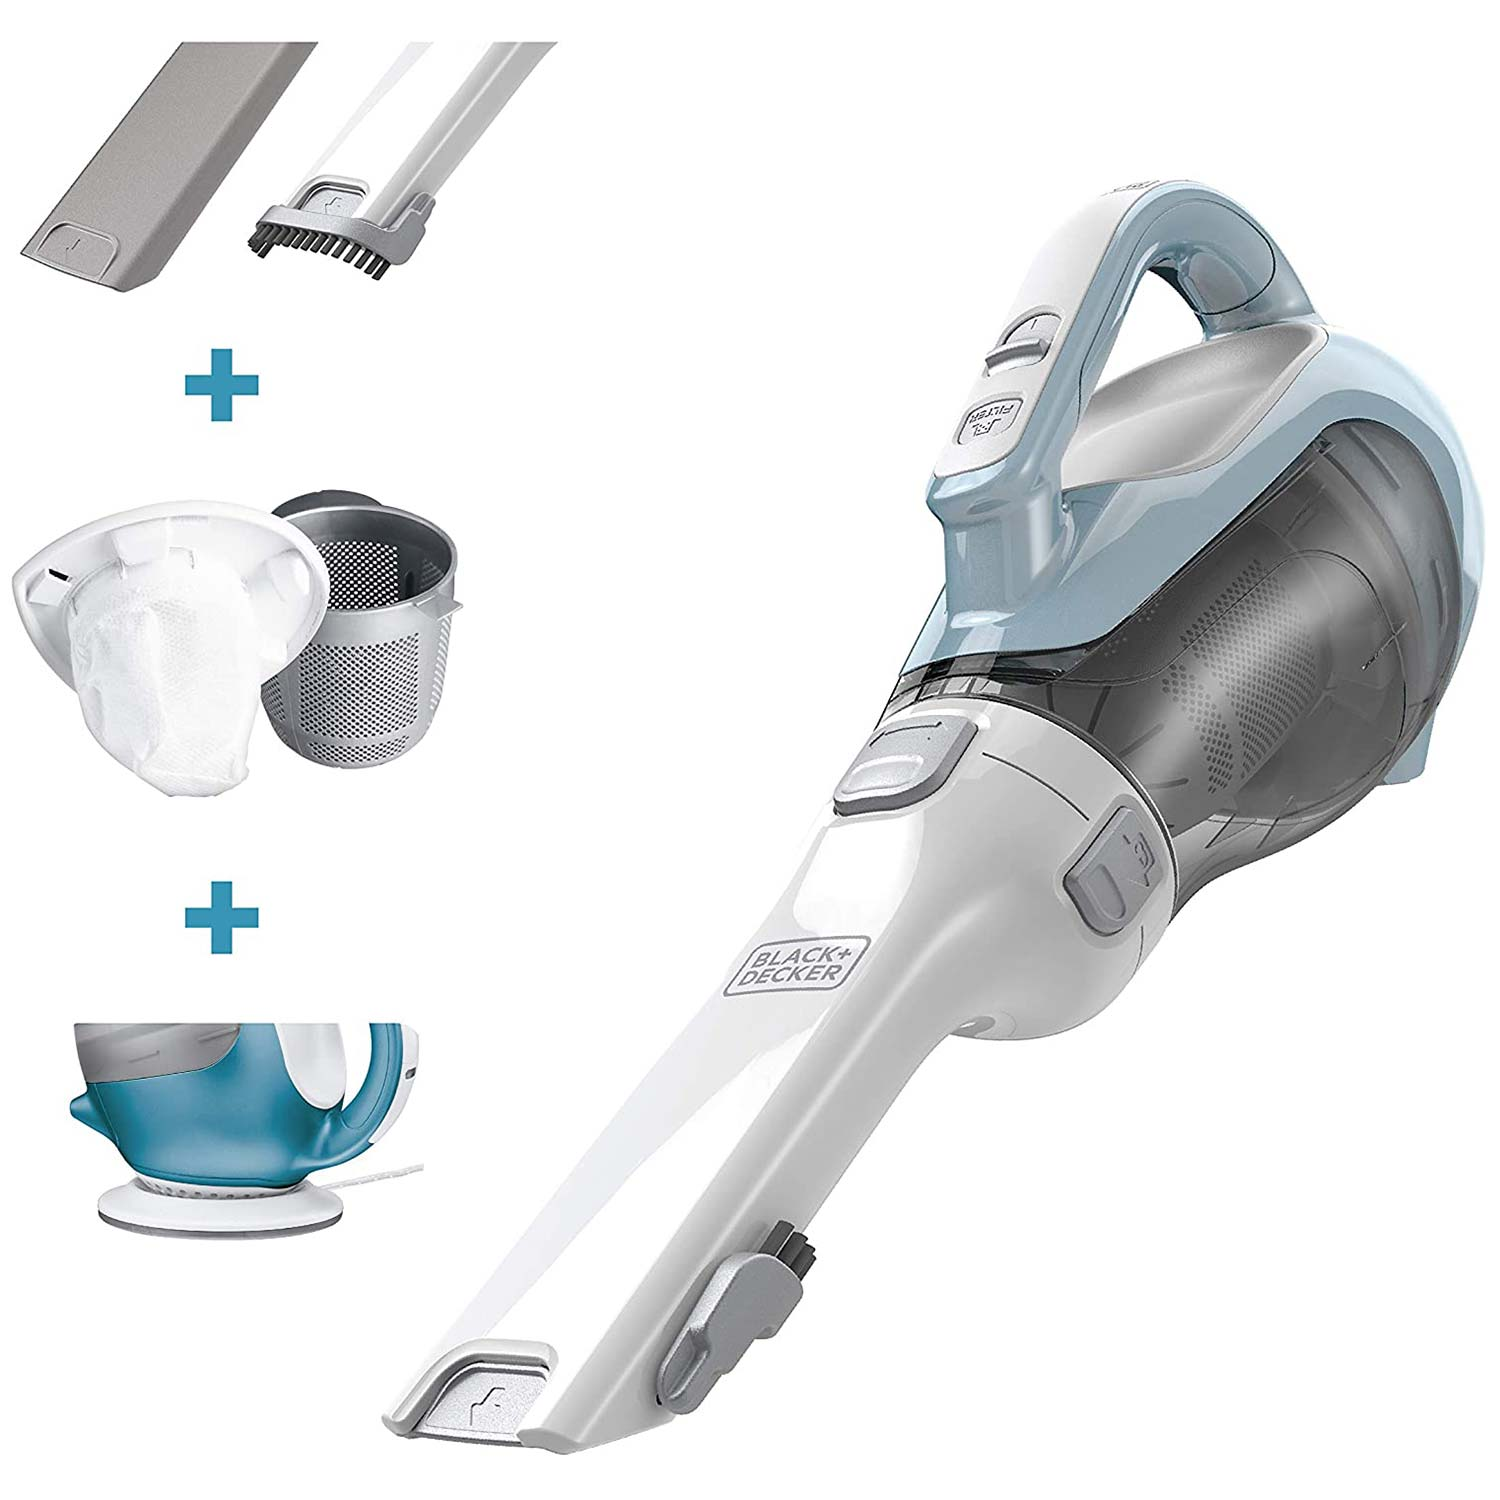 High Power, Handheld Vacuums with Attachments